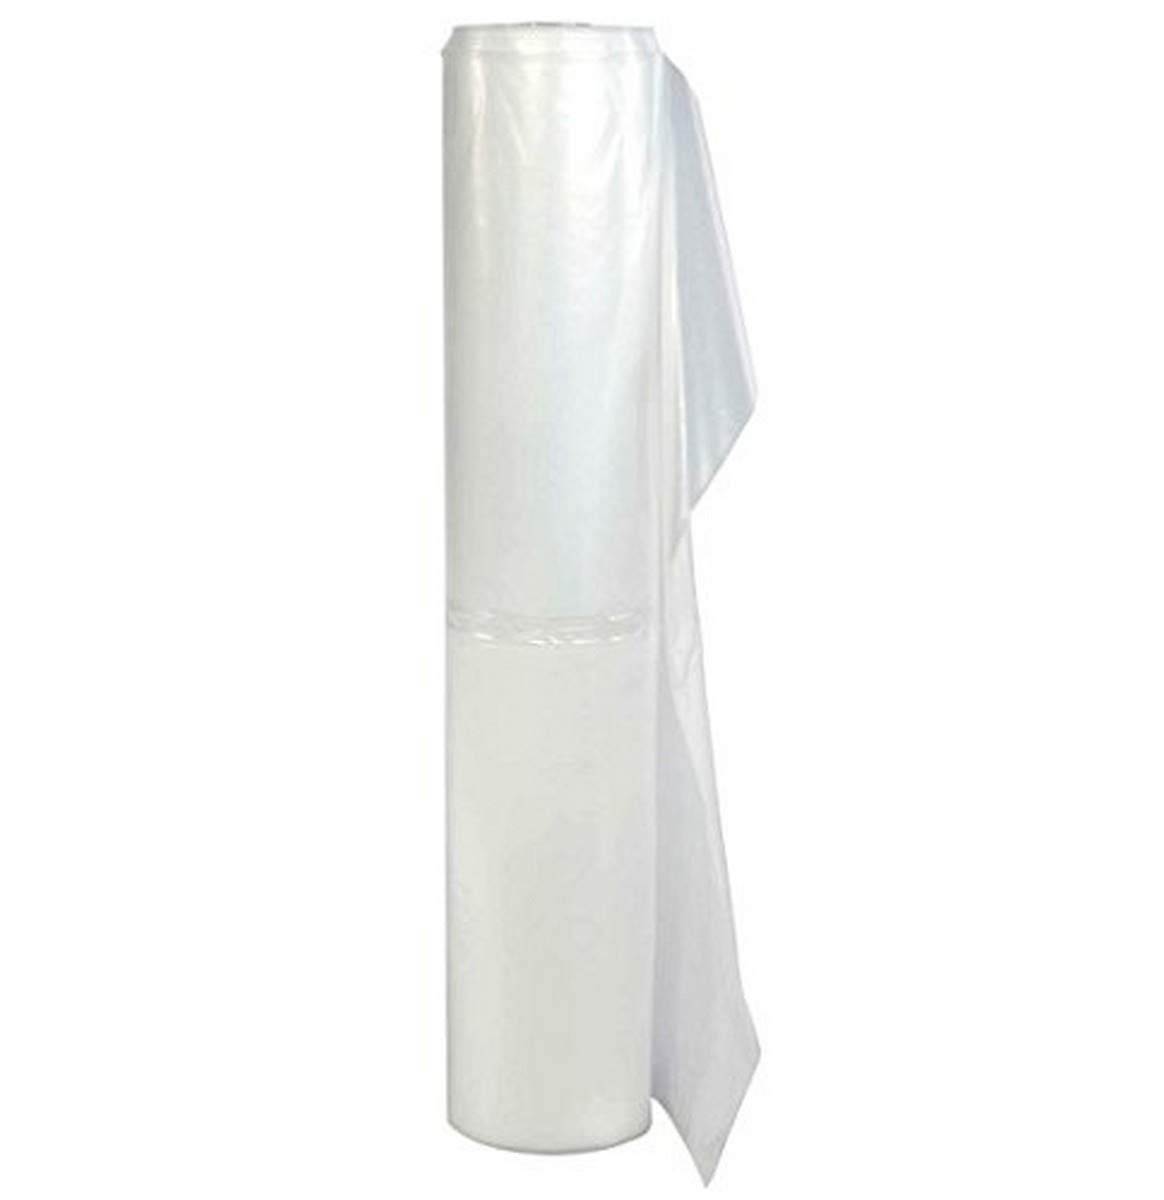 TRM Manufacturing HD16A Weatherall Automotive Painters Plastic Clear Hi Density Sheeting 1 Box of 350 Feet Long by 16 Feet Wide 9 Micron 0.35 Mil